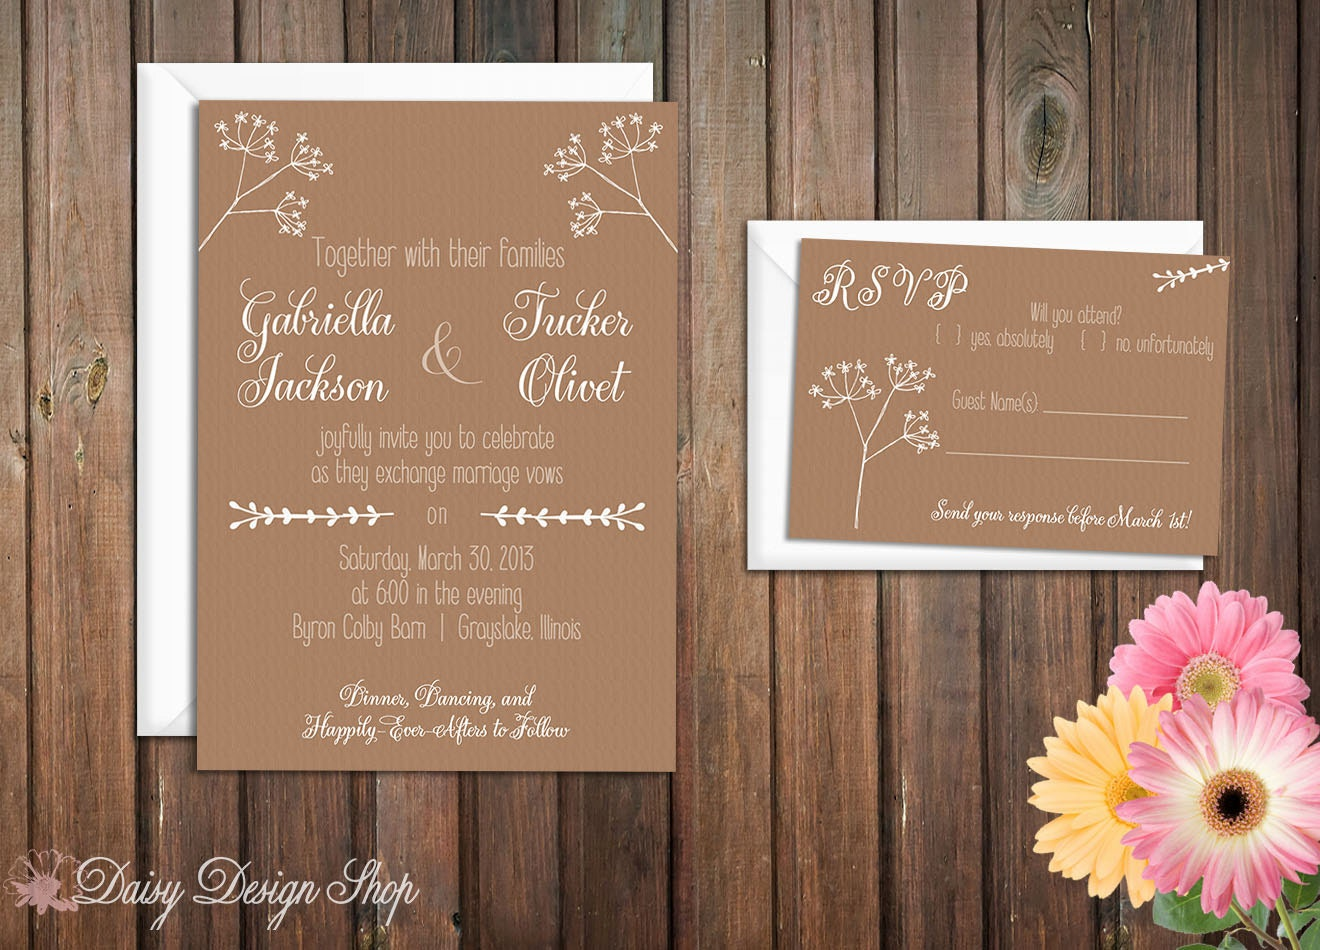 Textured Paper For Wedding Invitations: Wedding Invitation Greenery Sketches On Textured Background